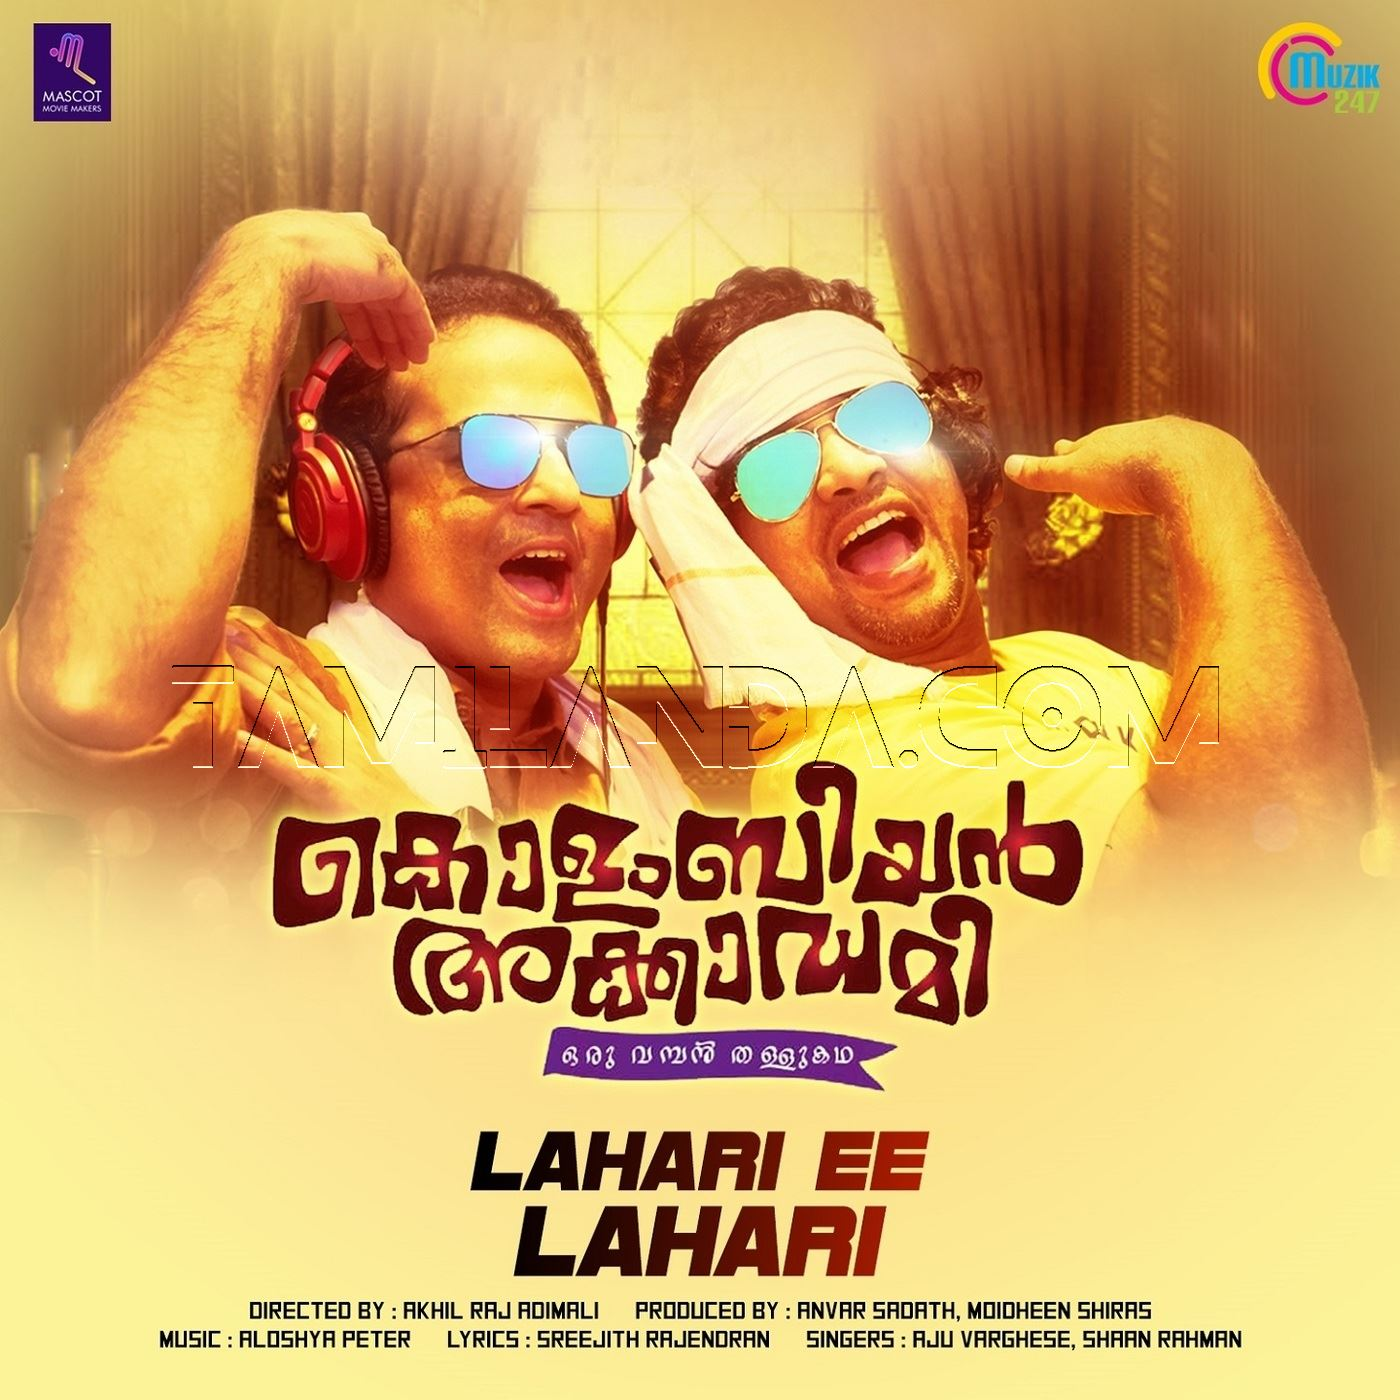 Lahari Ee Lahari (From Colombian Academy) – Single FLAC Song (2019)